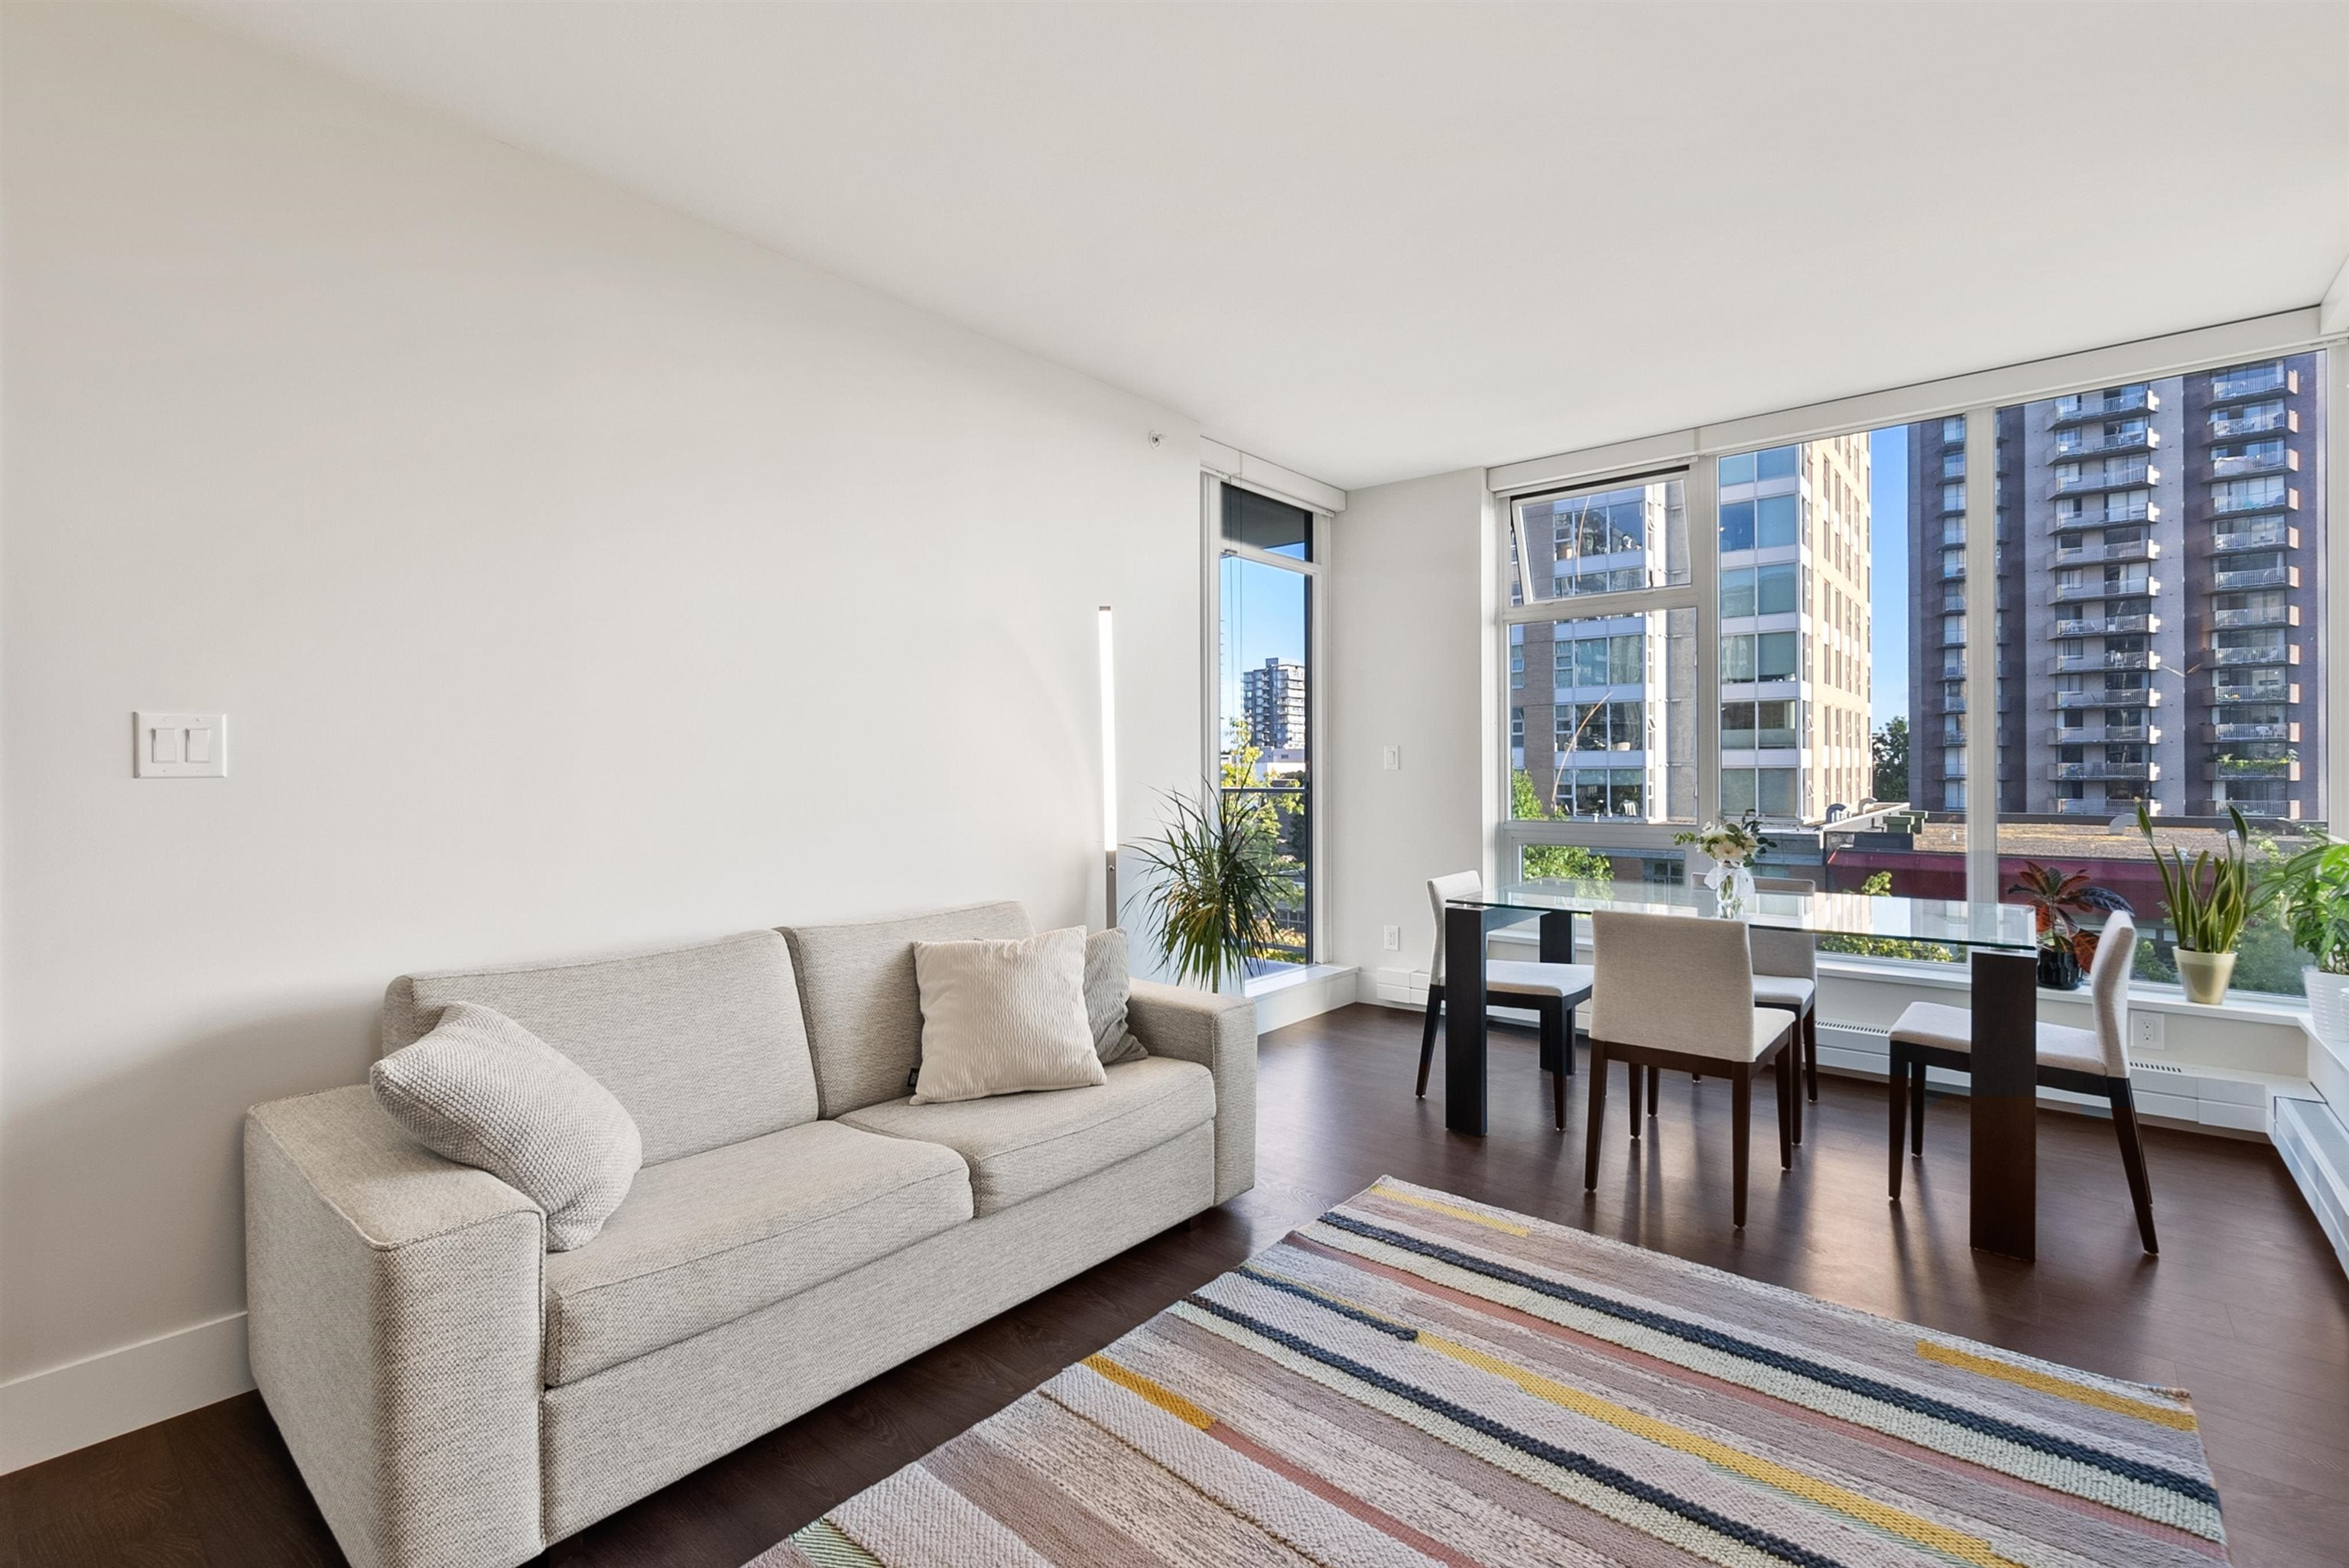 503 150 W 15TH STREET - Central Lonsdale Apartment/Condo for sale, 2 Bedrooms (R2624732) - #7